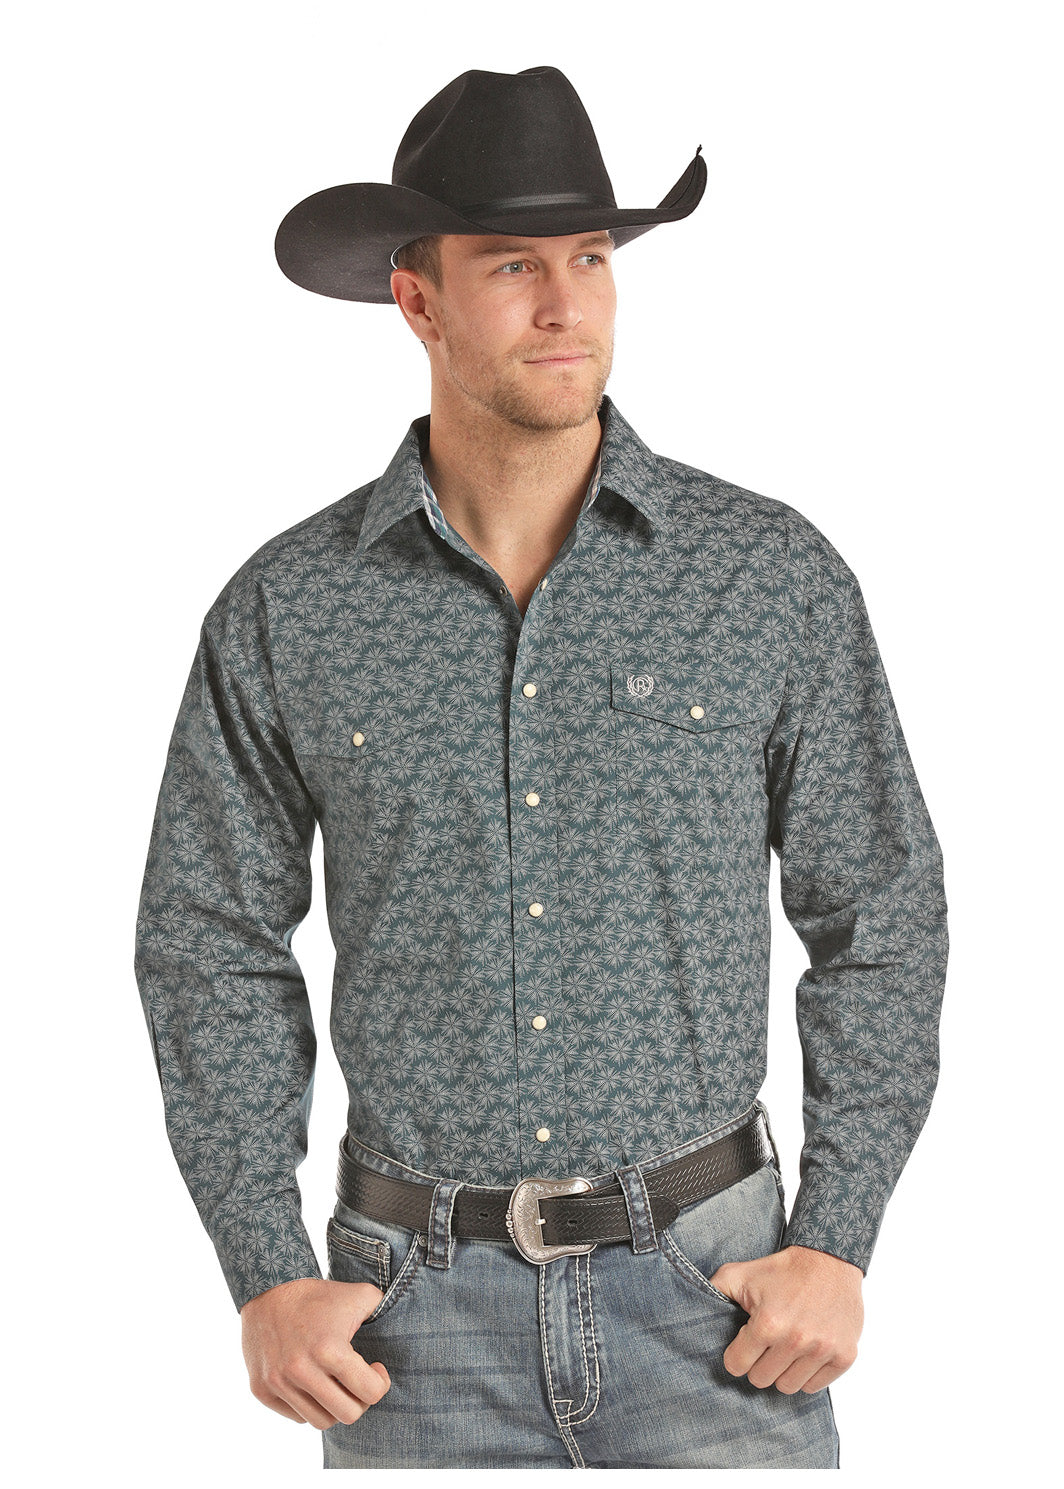 Men's Panhandle Snap Front Shirt #36S7712-C